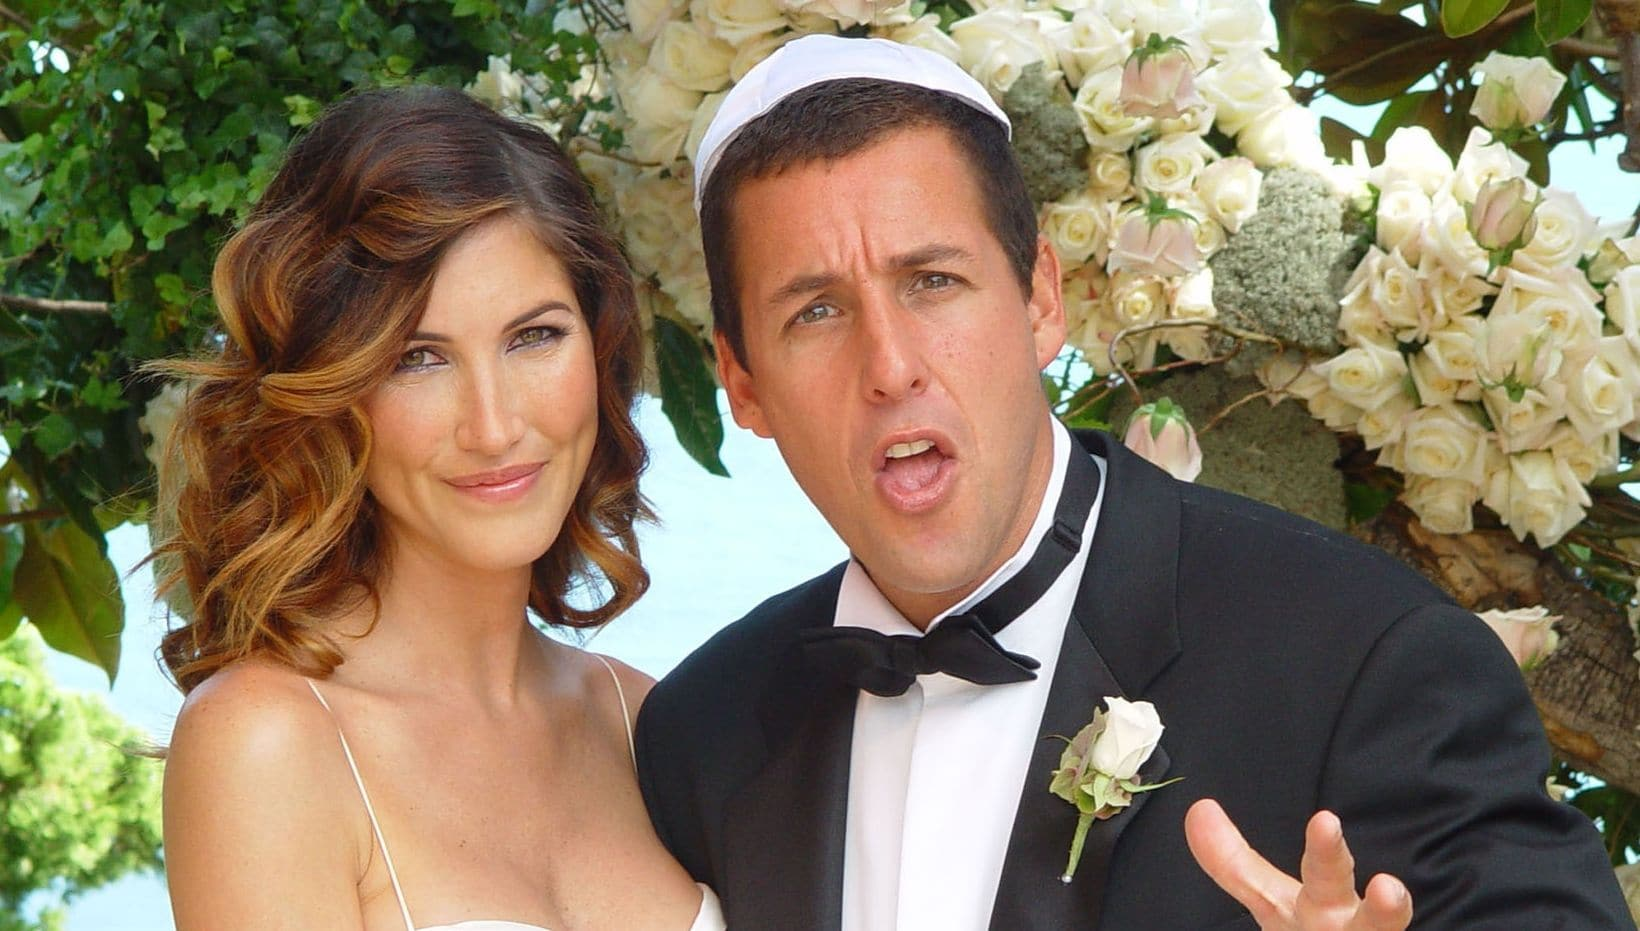 The Untold Truth Of Adam Sandler's Wife - Jackie Sandler - TheNetline